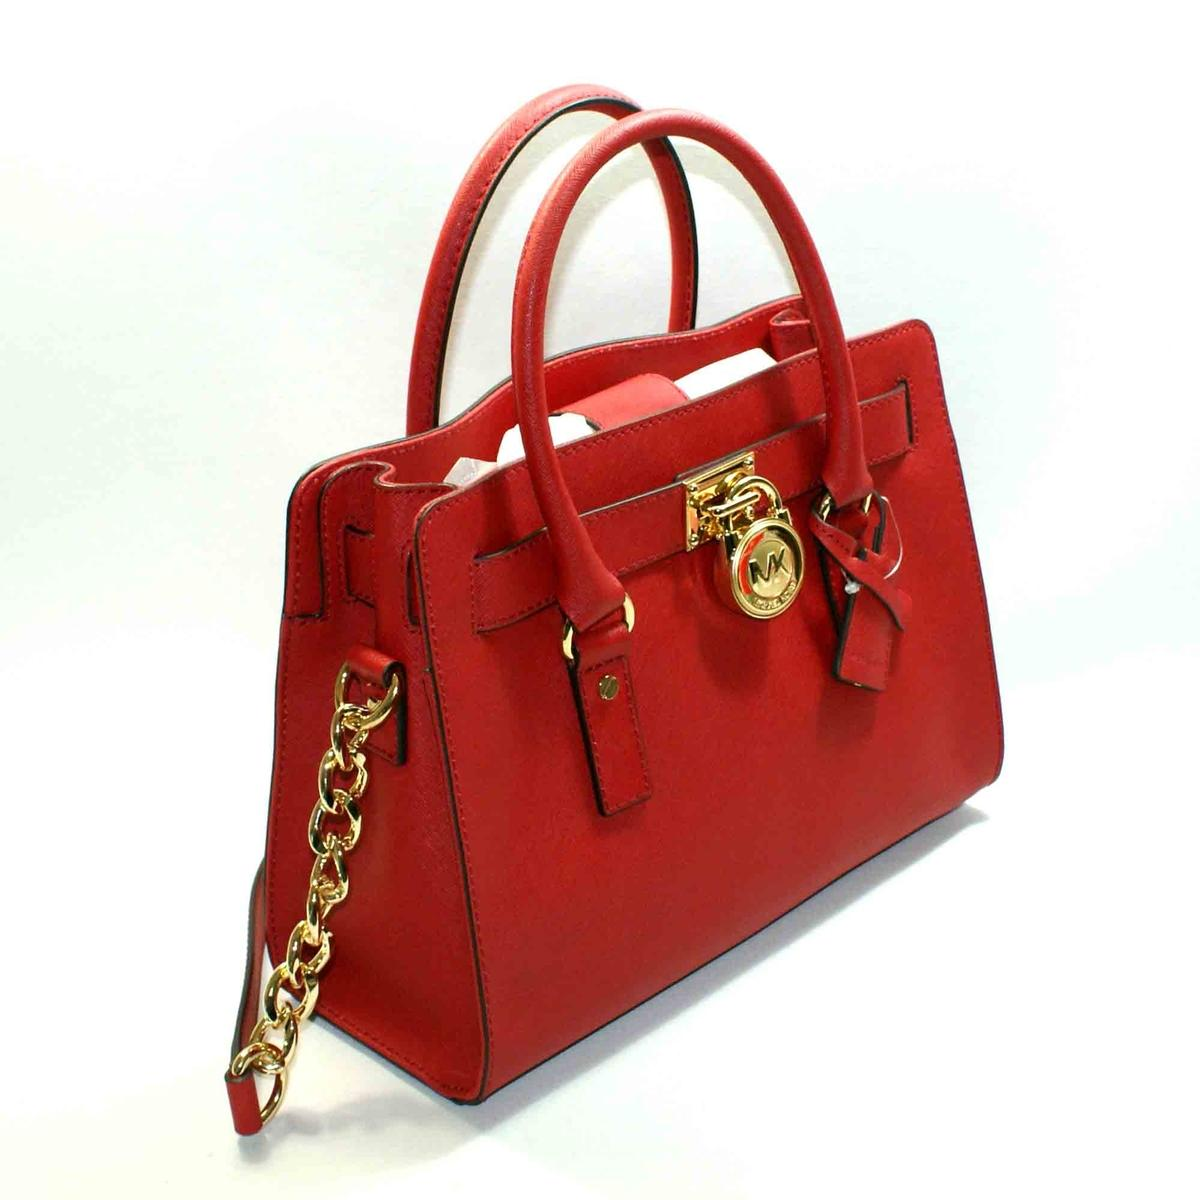 be0a1b942bf6 Home · Michael Kors · Mini Hamilton East West Genuine Leather Tote Red.  CLICK THUMBNAIL TO ZOOM. Found ...